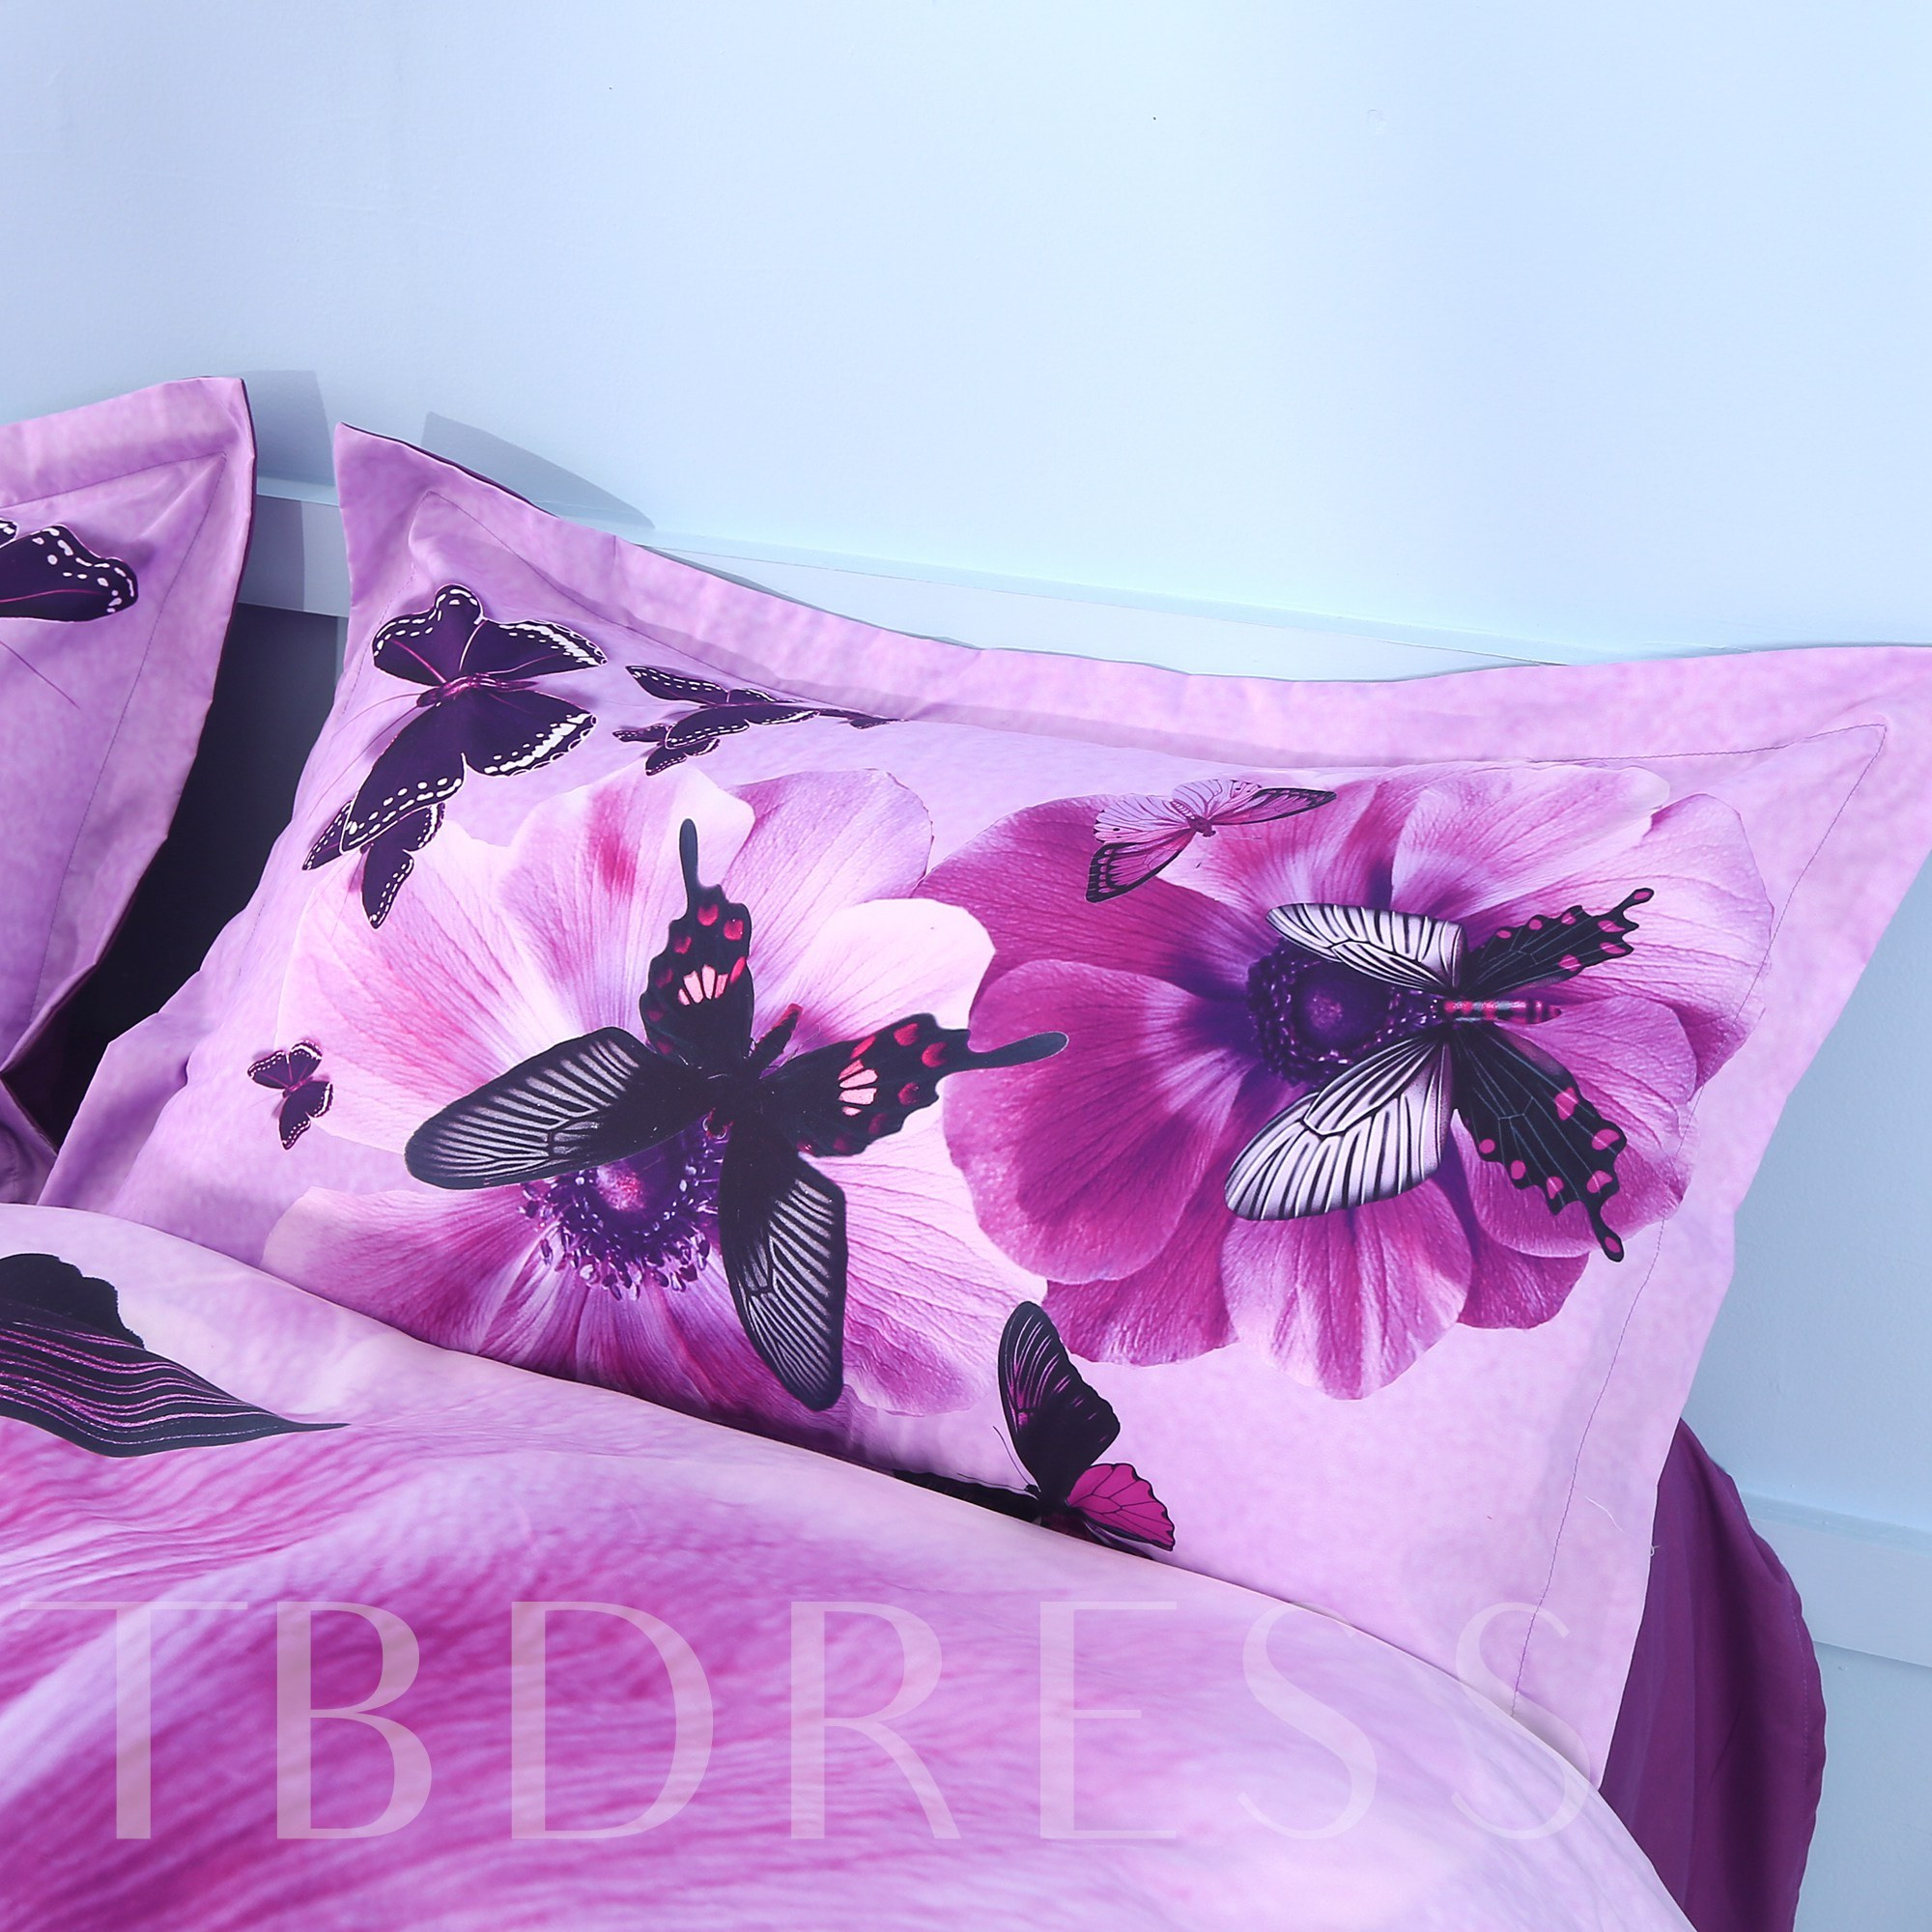 Pansy and Butterfly Printed Cotton 4-Piece Purple 3D Bedding Sets/Duvet Covers